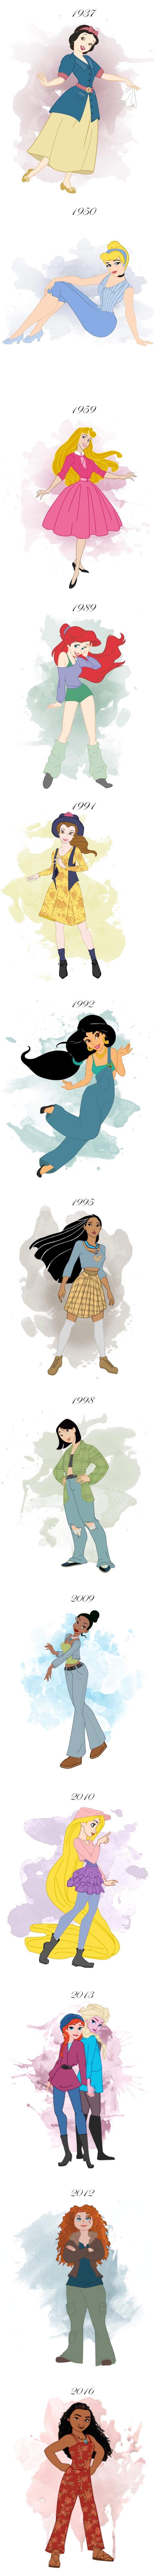 Disney Princesses and fashion of the year they were released